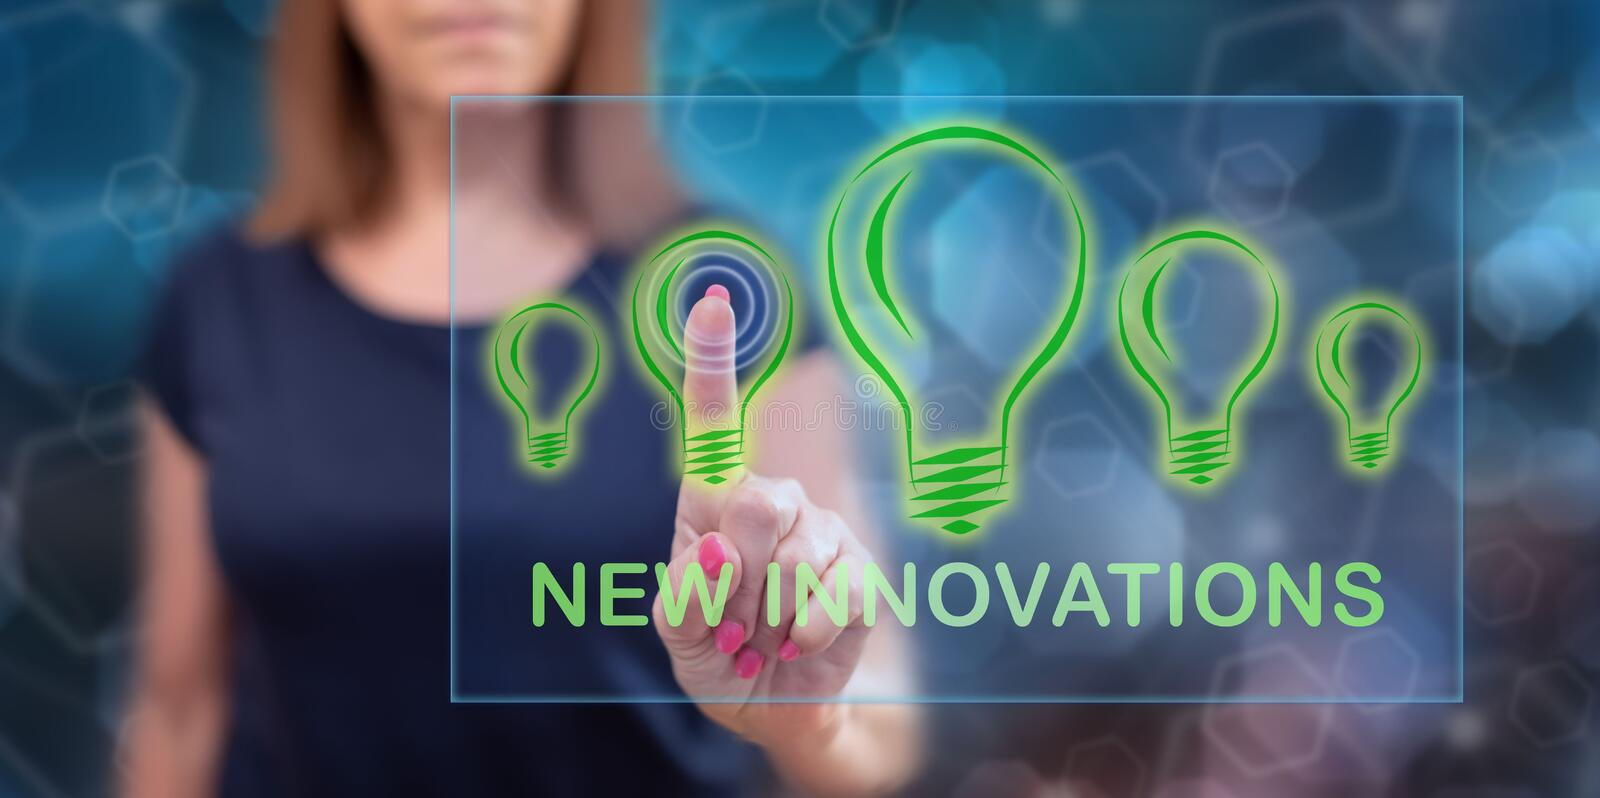 Woman touching a new innovations concept stock images